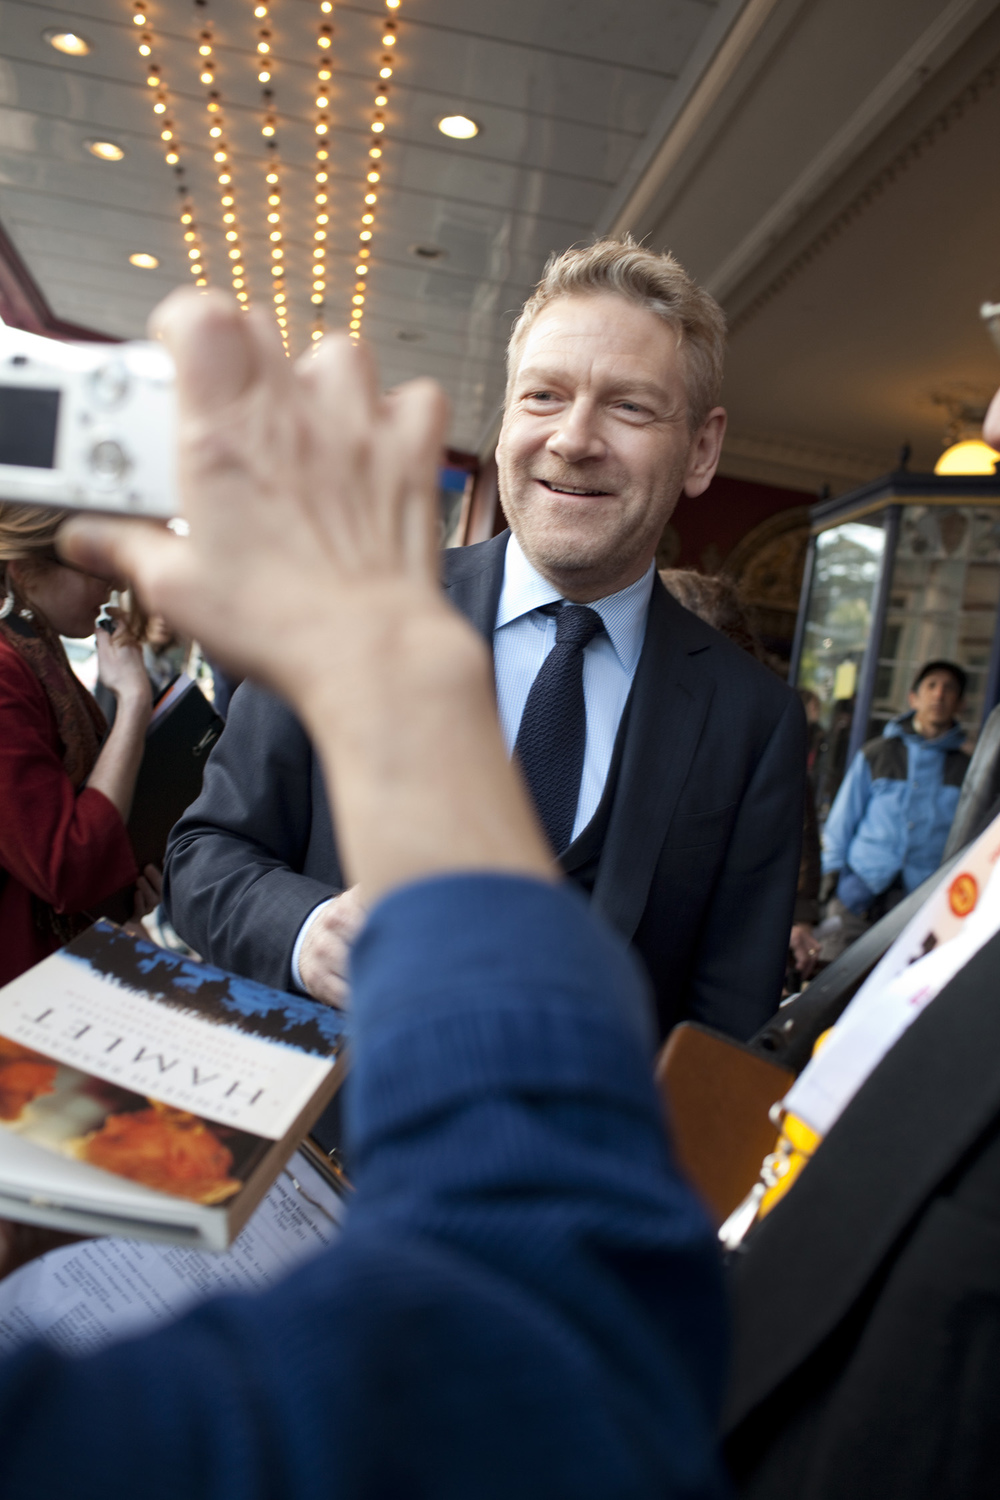 4/26: Award Winners and Cows     photo by Pamela Gentile   What did Award recipient Kenneth Branagh do during the day before the Film Society's Awards Night Gala? He went to see the Swedish documentary  Women with Cows .  And he liked it. And he talked about it on the radio the next day.